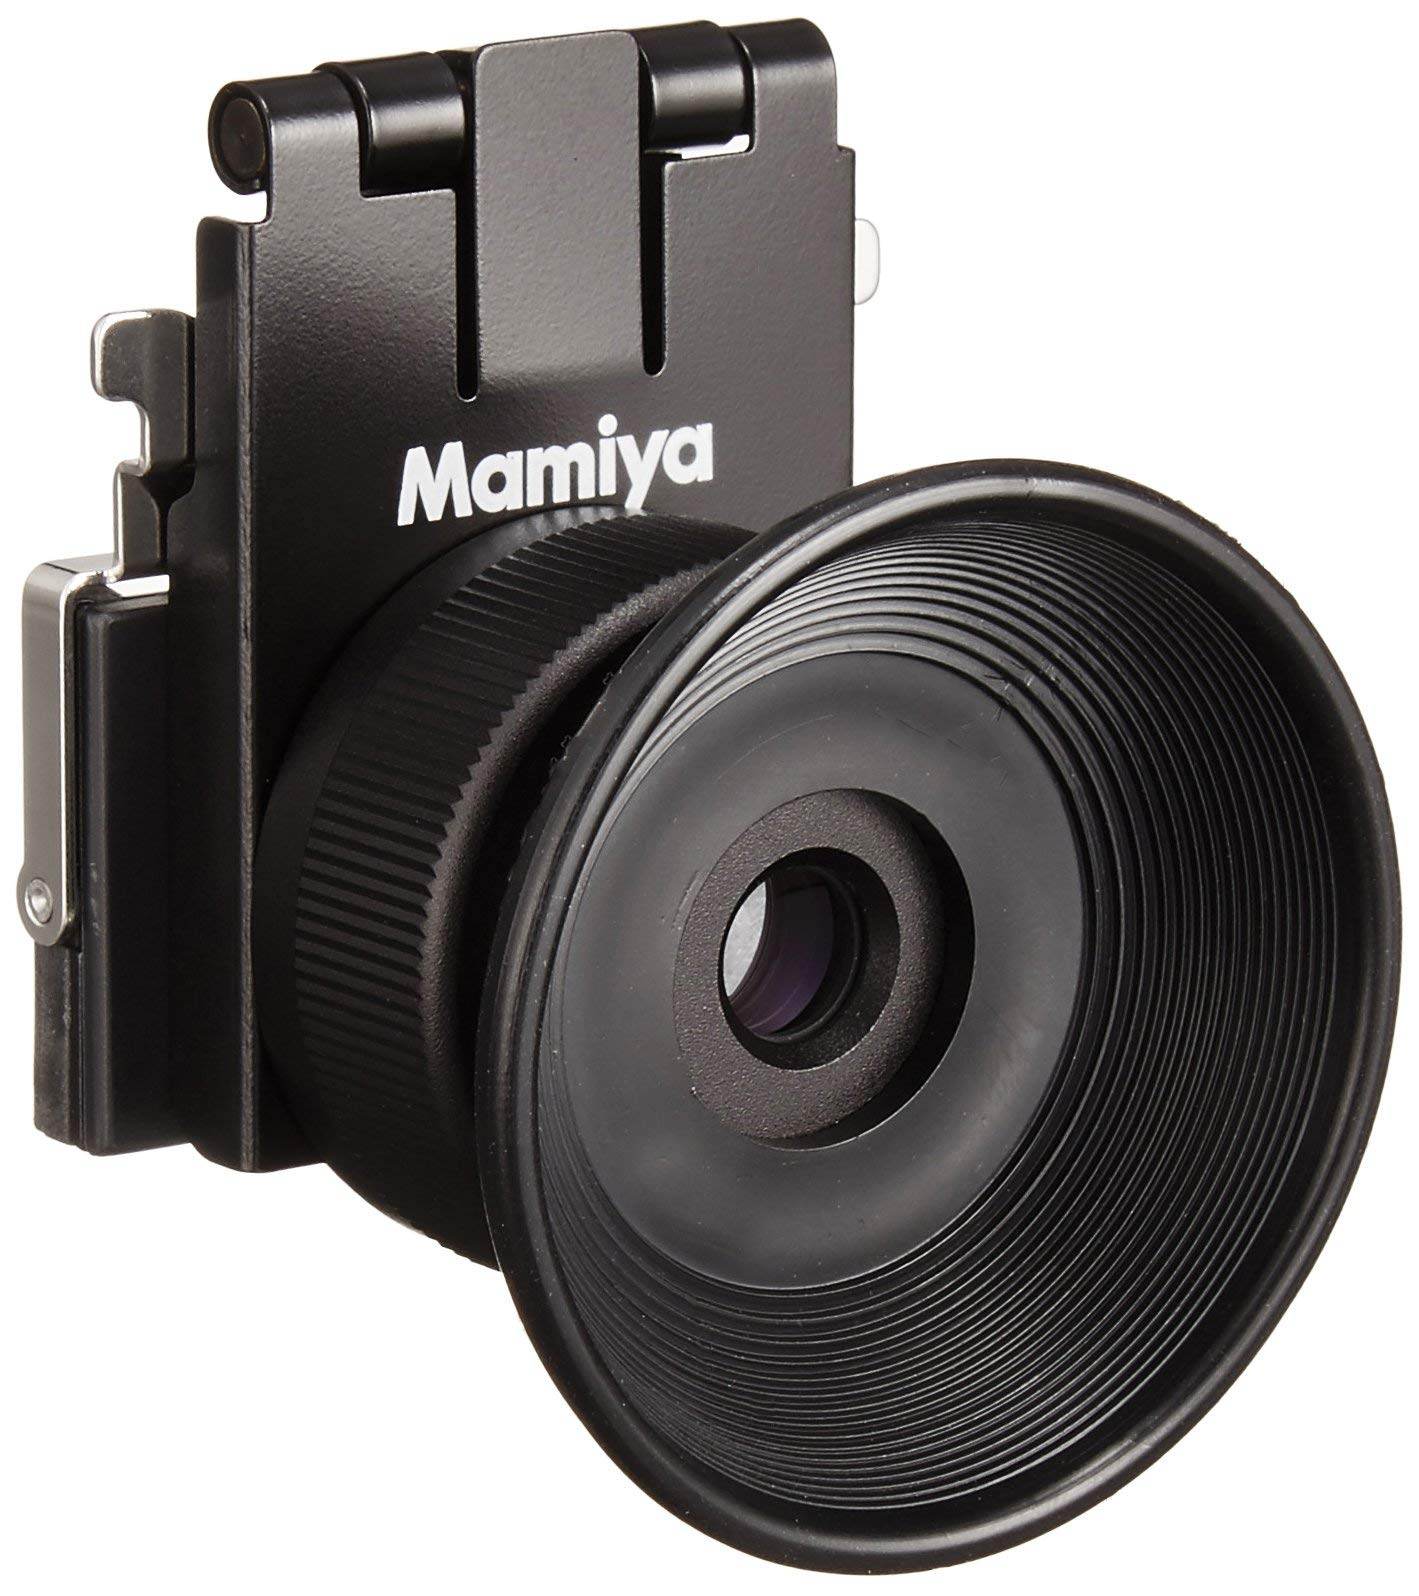 Mamiya 645 Af Critical Focus Magnifier (Renewed) by Mamiya